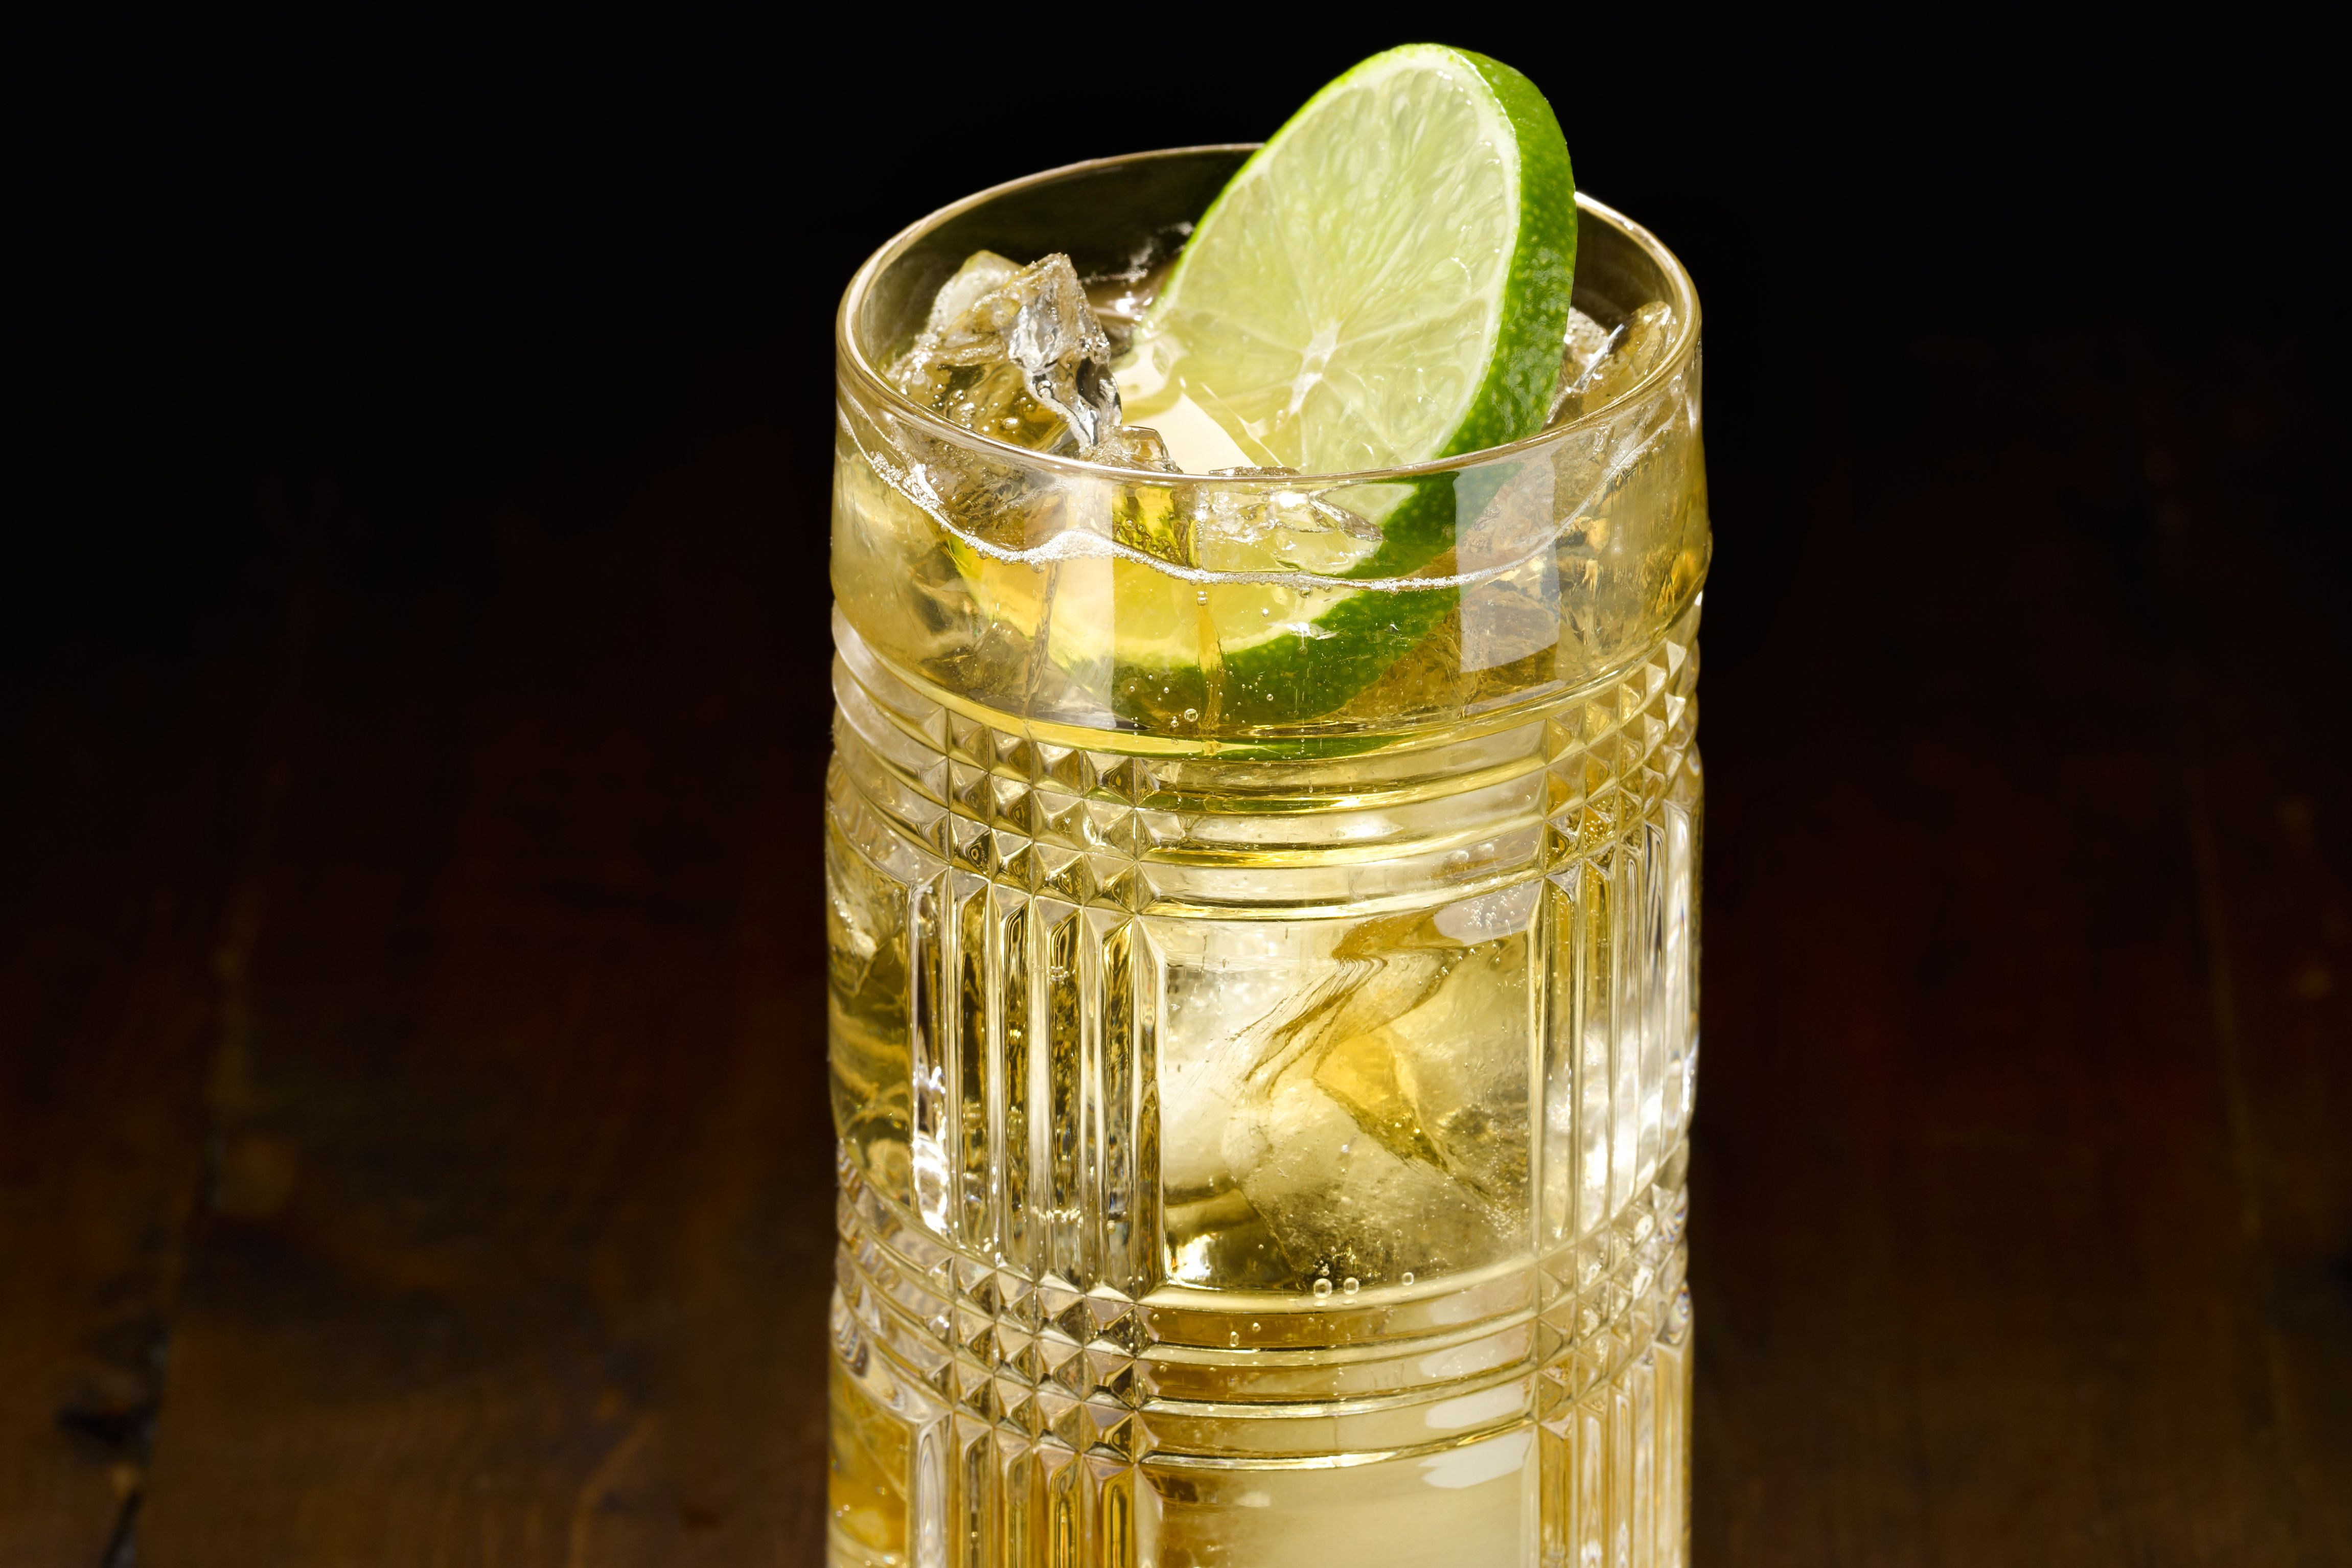 Juan Collins A Refreshing Tequila Cocktail Recipe